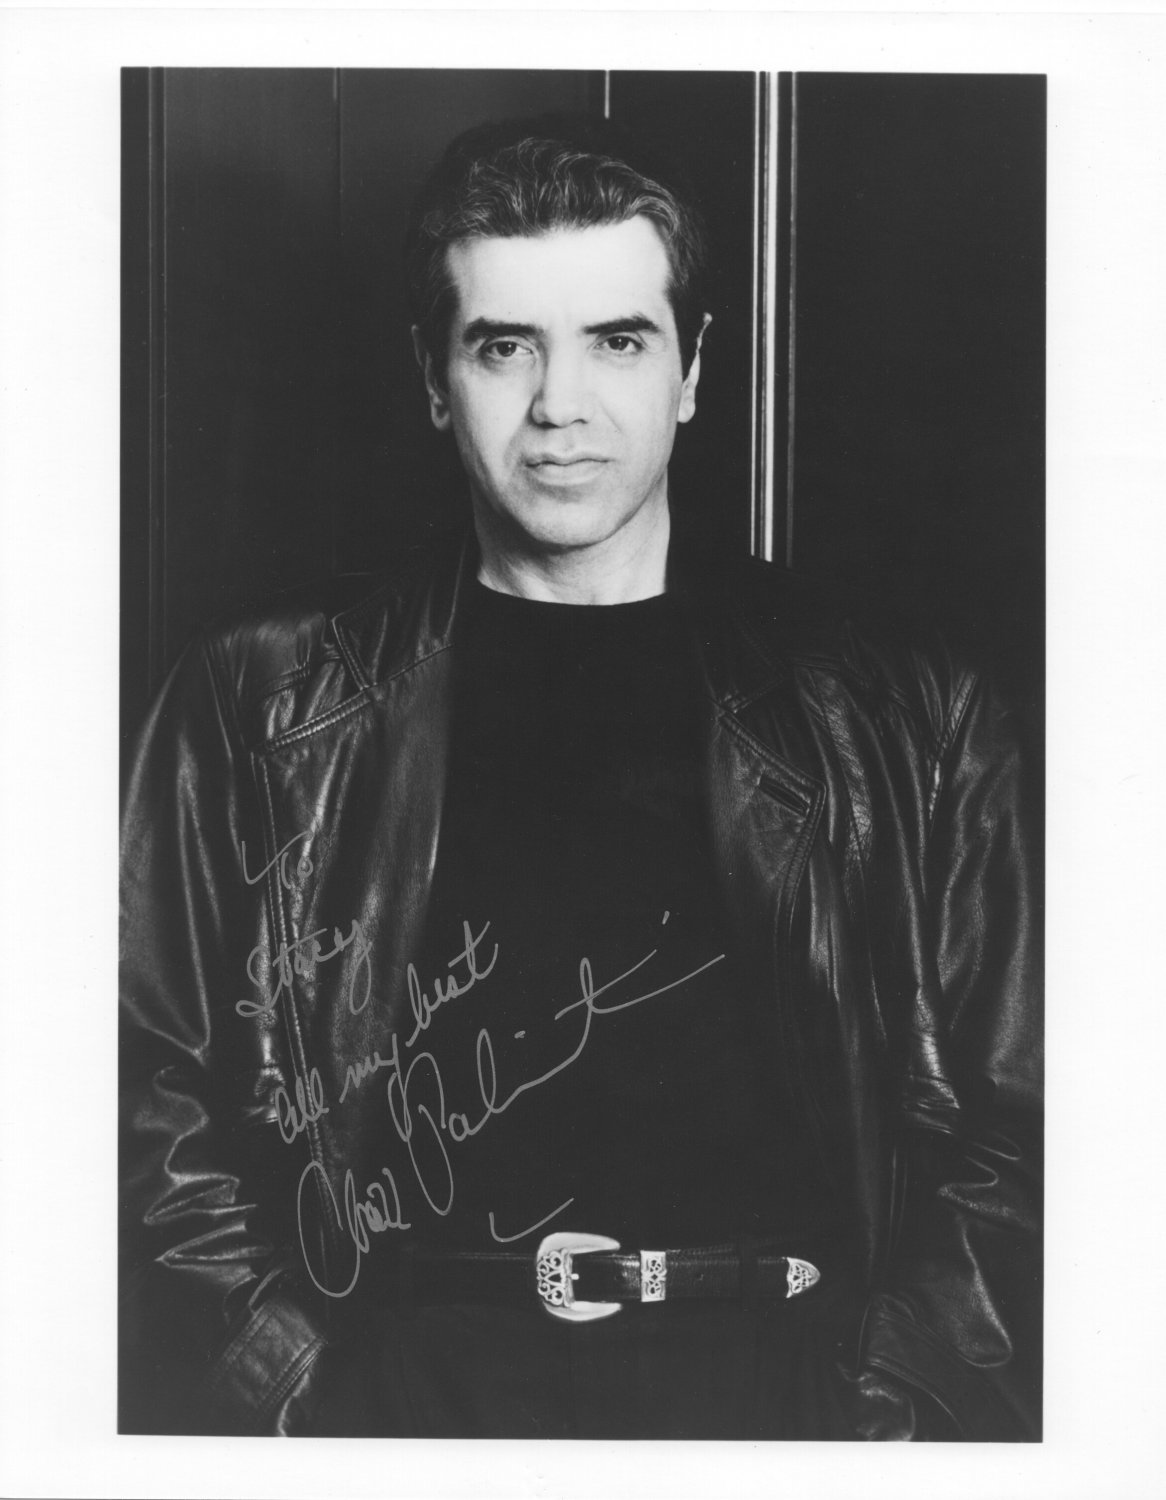 CHAZ PALMINTERI - OUTSTANDING CHARACTER ACTOR - HAND SIGNED AUTOGRAPHED PHOTO WITH COA